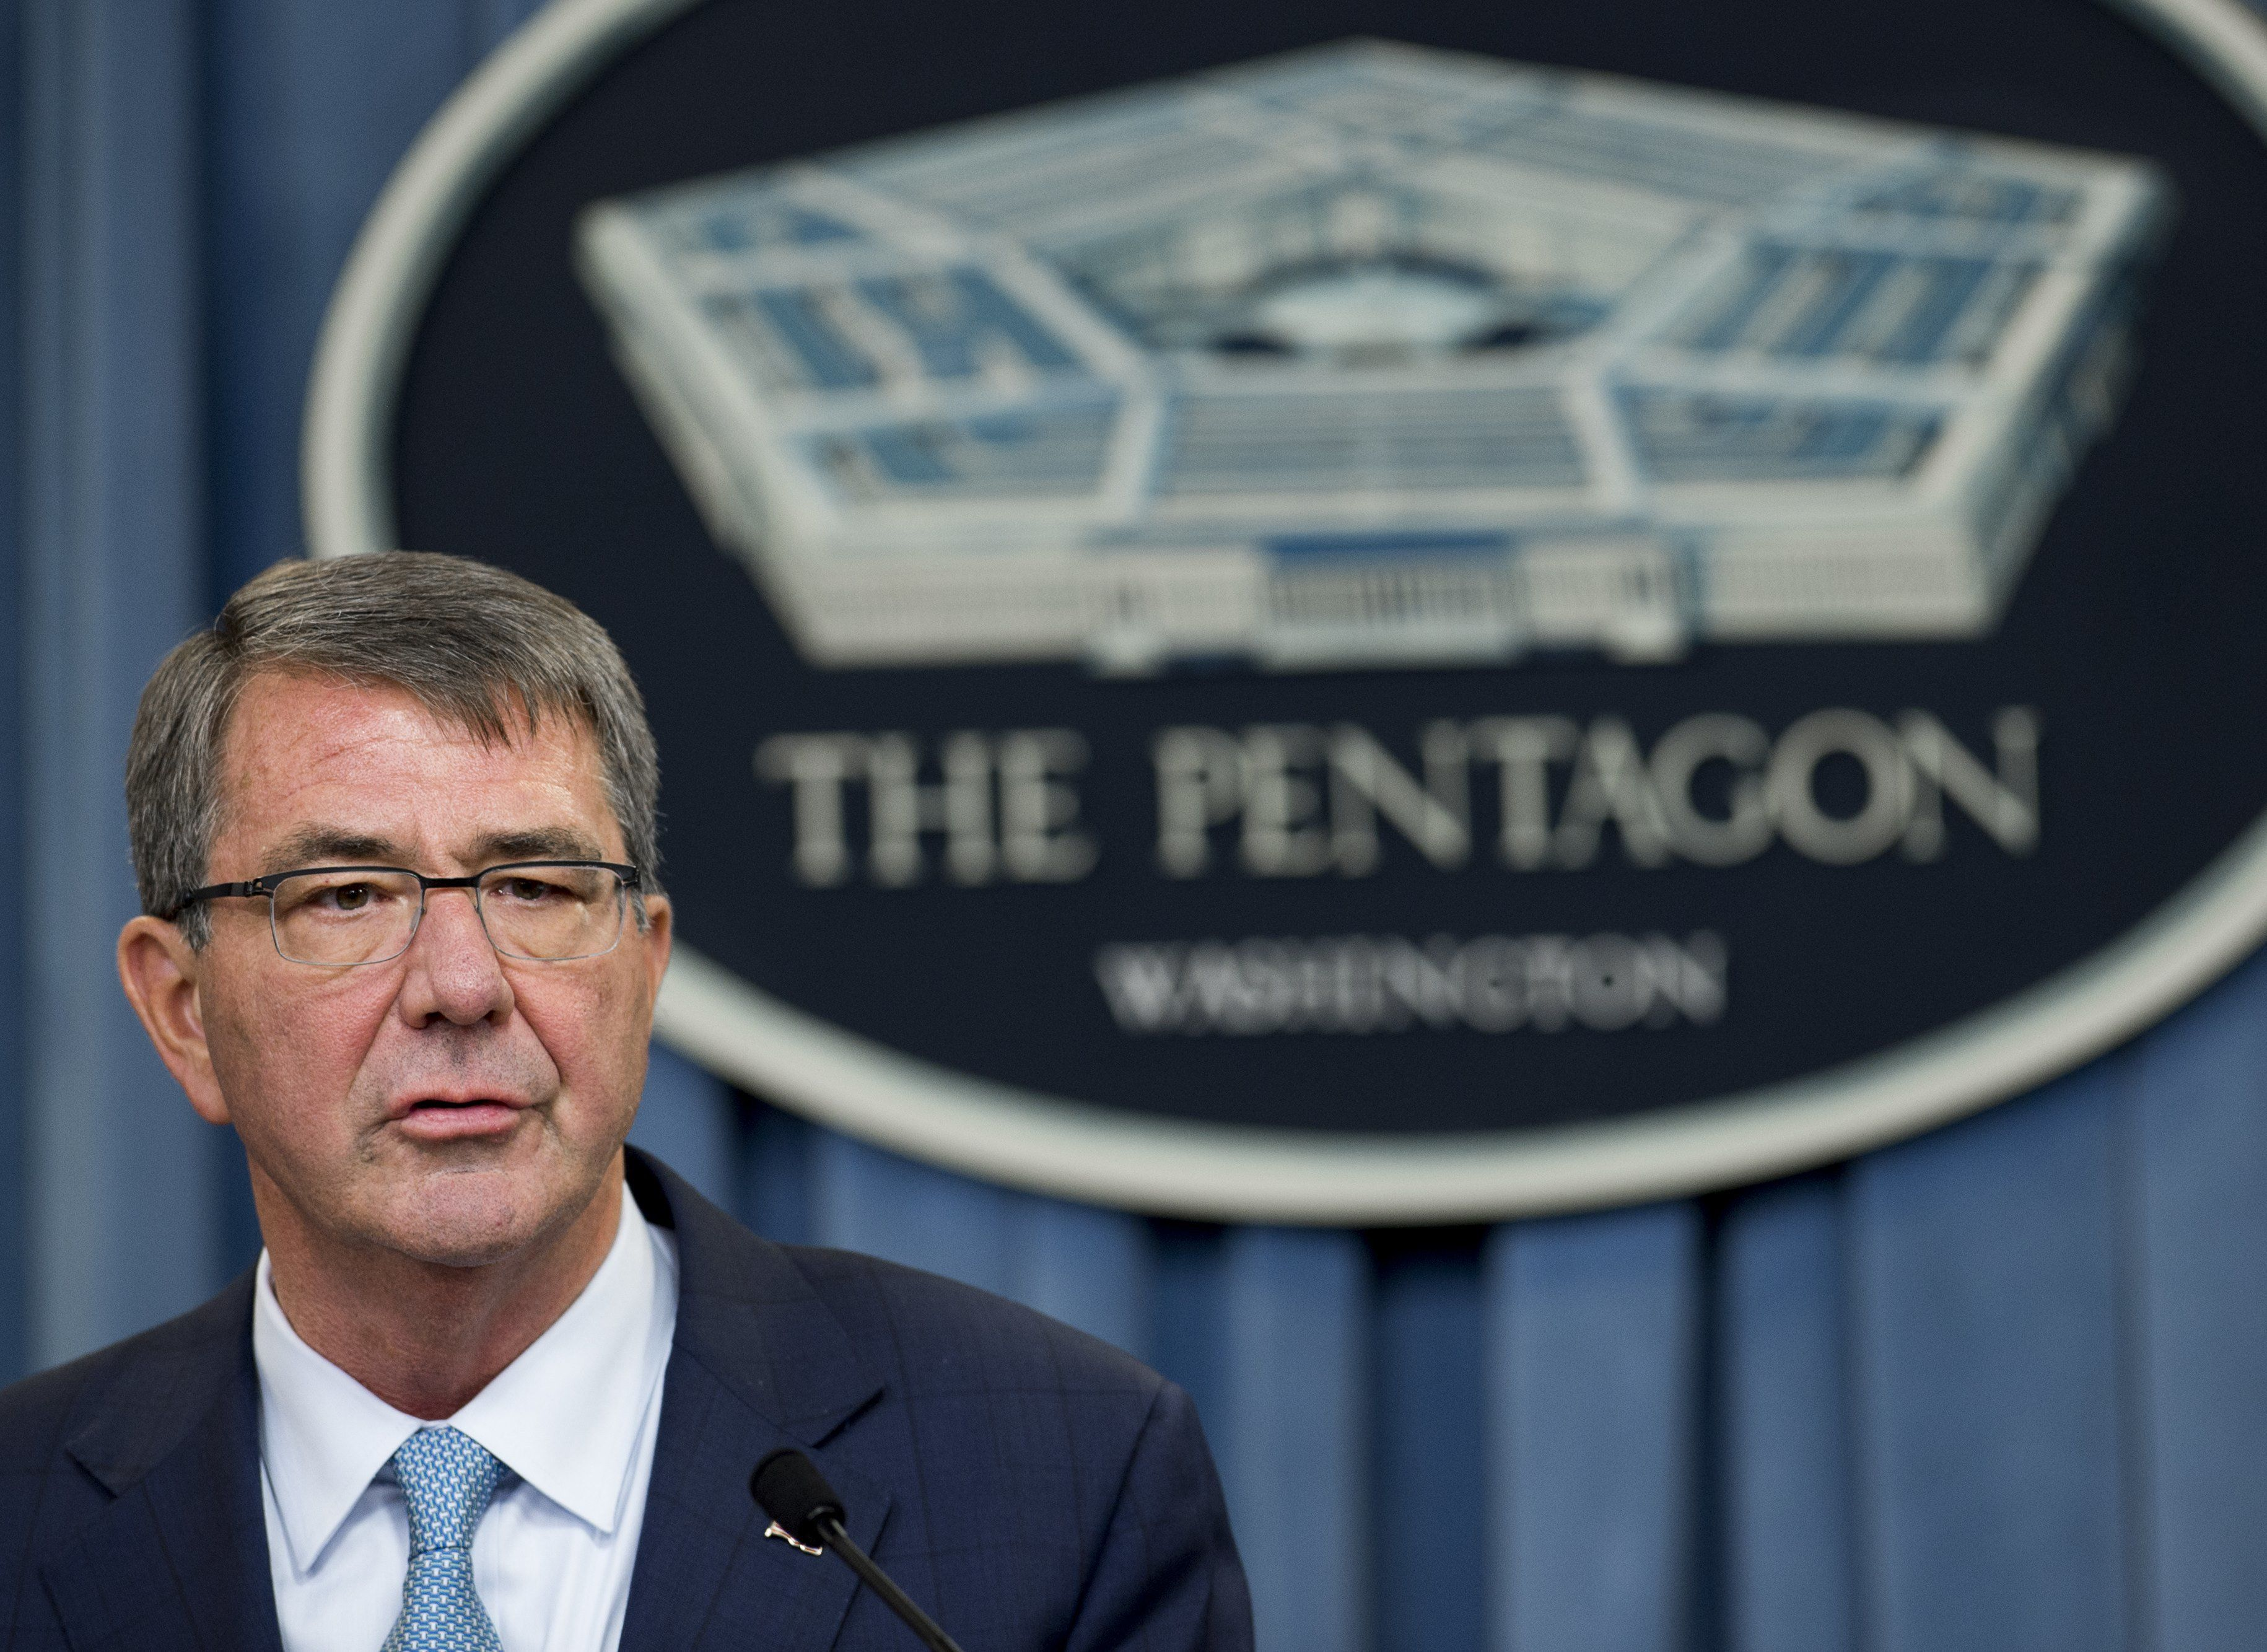 US Secretary of Defense Ashton Carter announces that the military will lift its ban on transgender troops during a press briefing at the Pentagon in Washington, DC, June 30, 2016. 'This is the right thing to do for our people and for the force,' Carter said in a statement. / AFP / SAUL LOEB        (Photo credit should read SAUL LOEB/AFP/Getty Images)